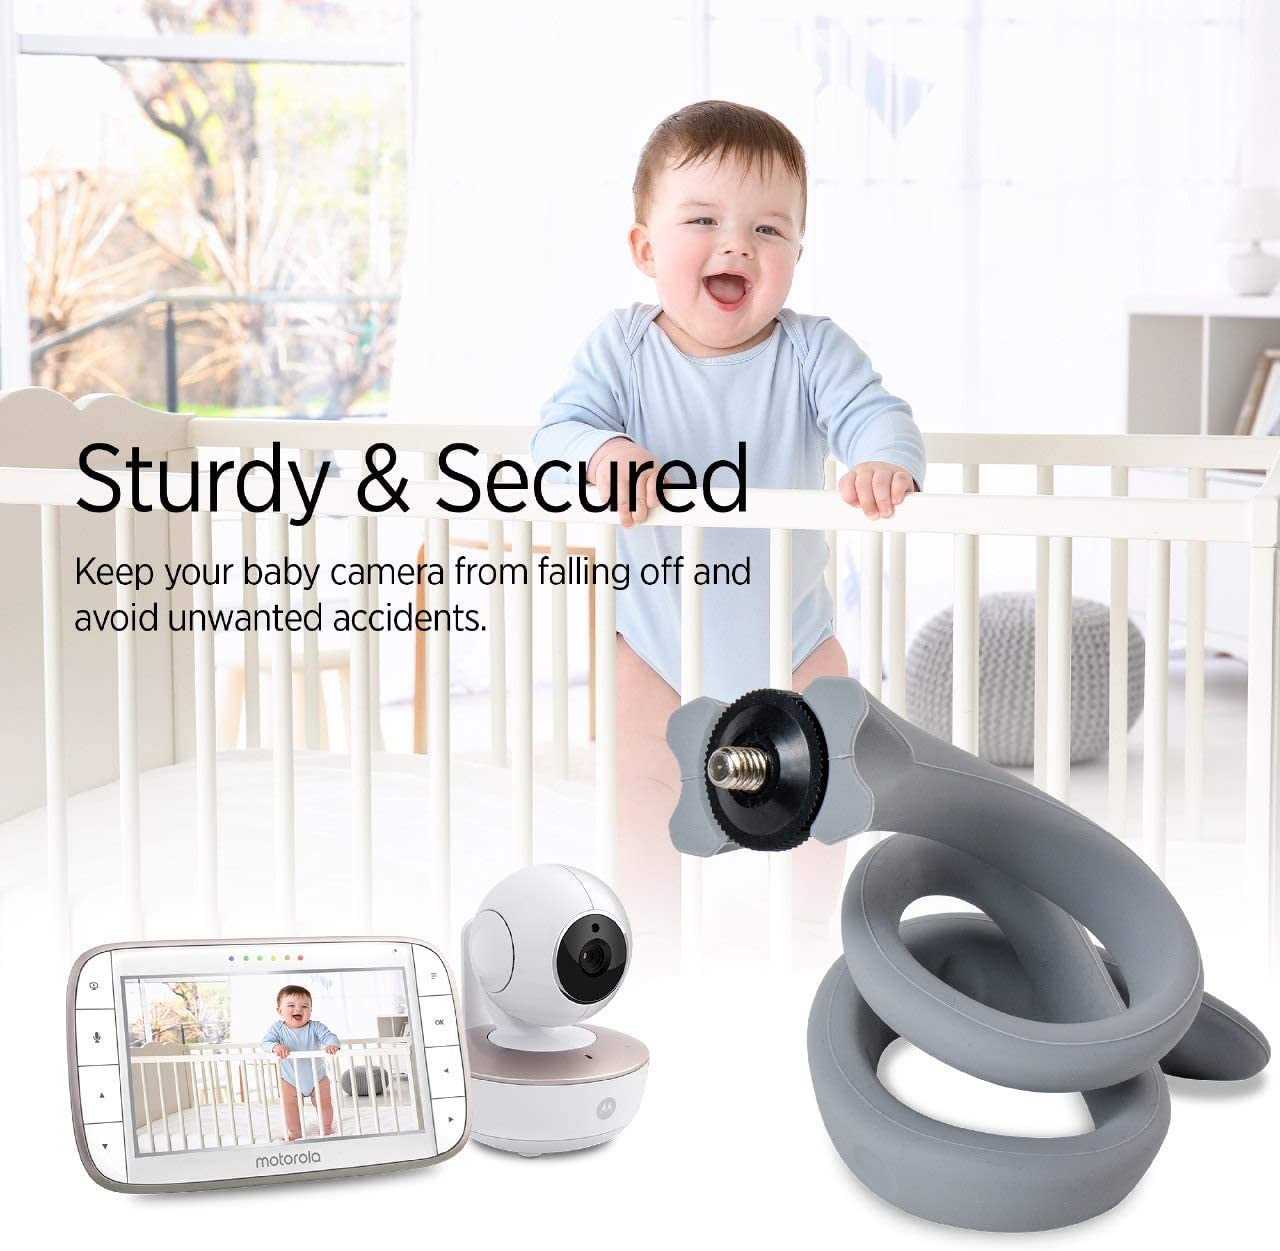 Crib Camera Holder Stand for Motorola and Most Universal Baby Monitor with 1//4 Threaded Hole Attach Your Baby Camera Wherever You Like Without Any Tools or Damage Baby Monitor Mount